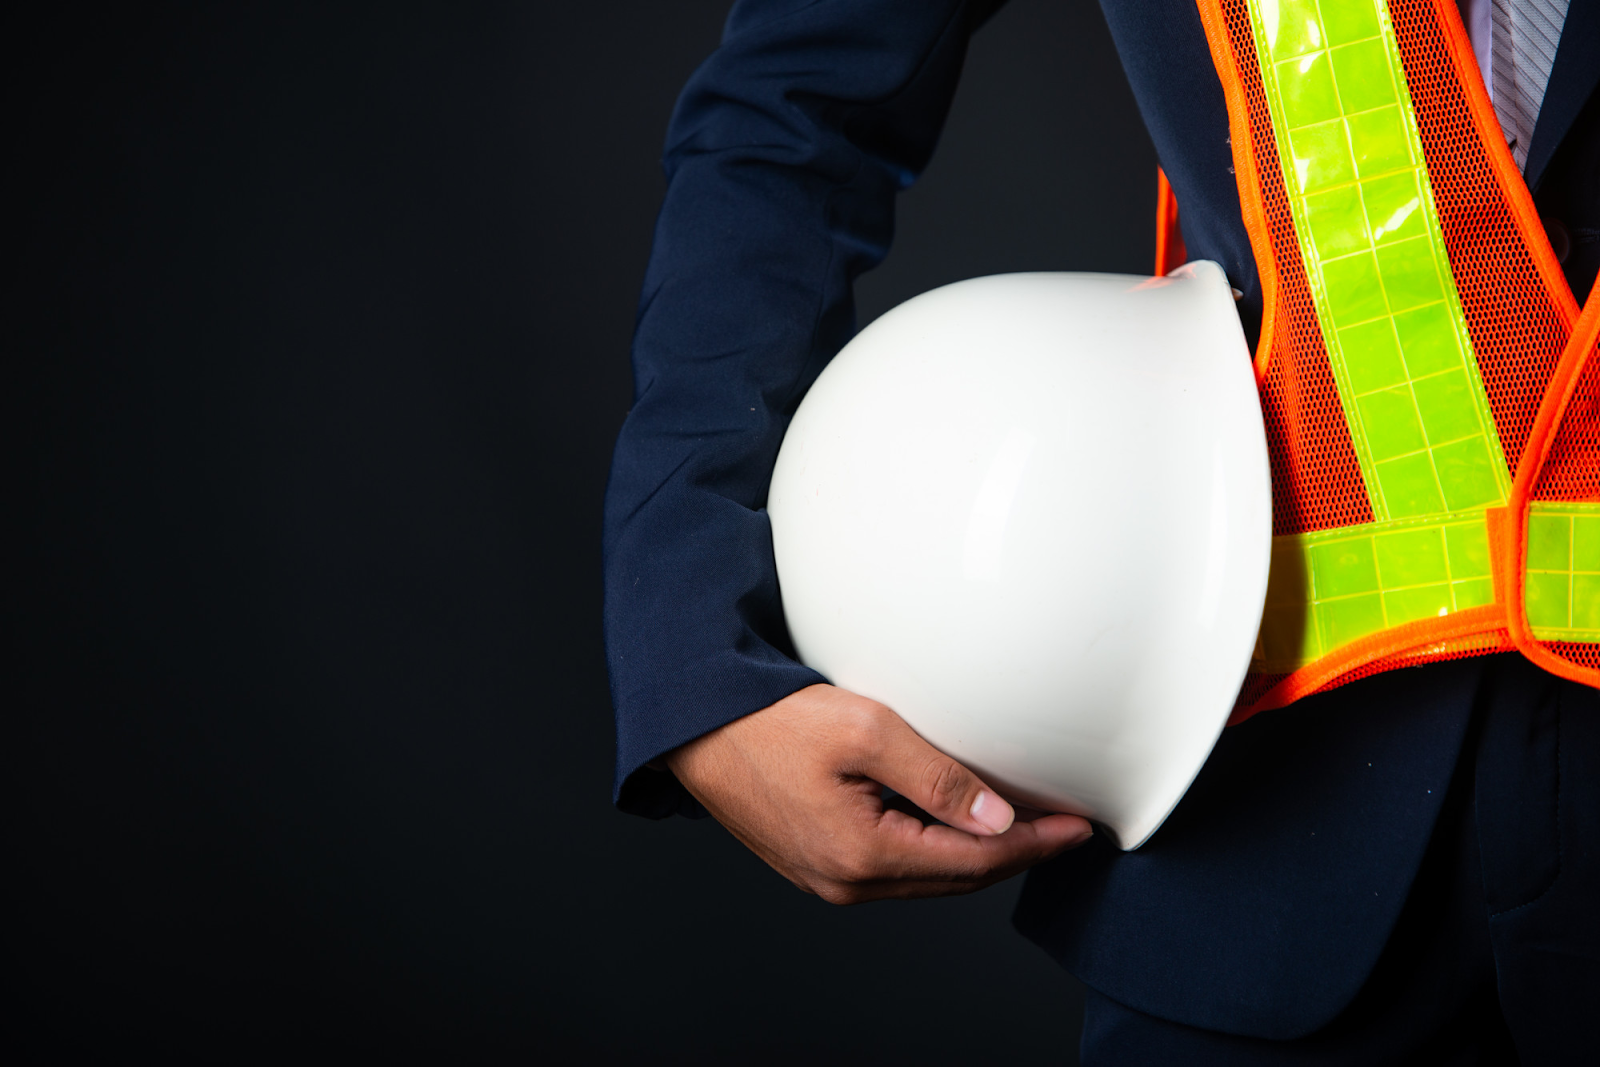 engineer holding a white construction helmet